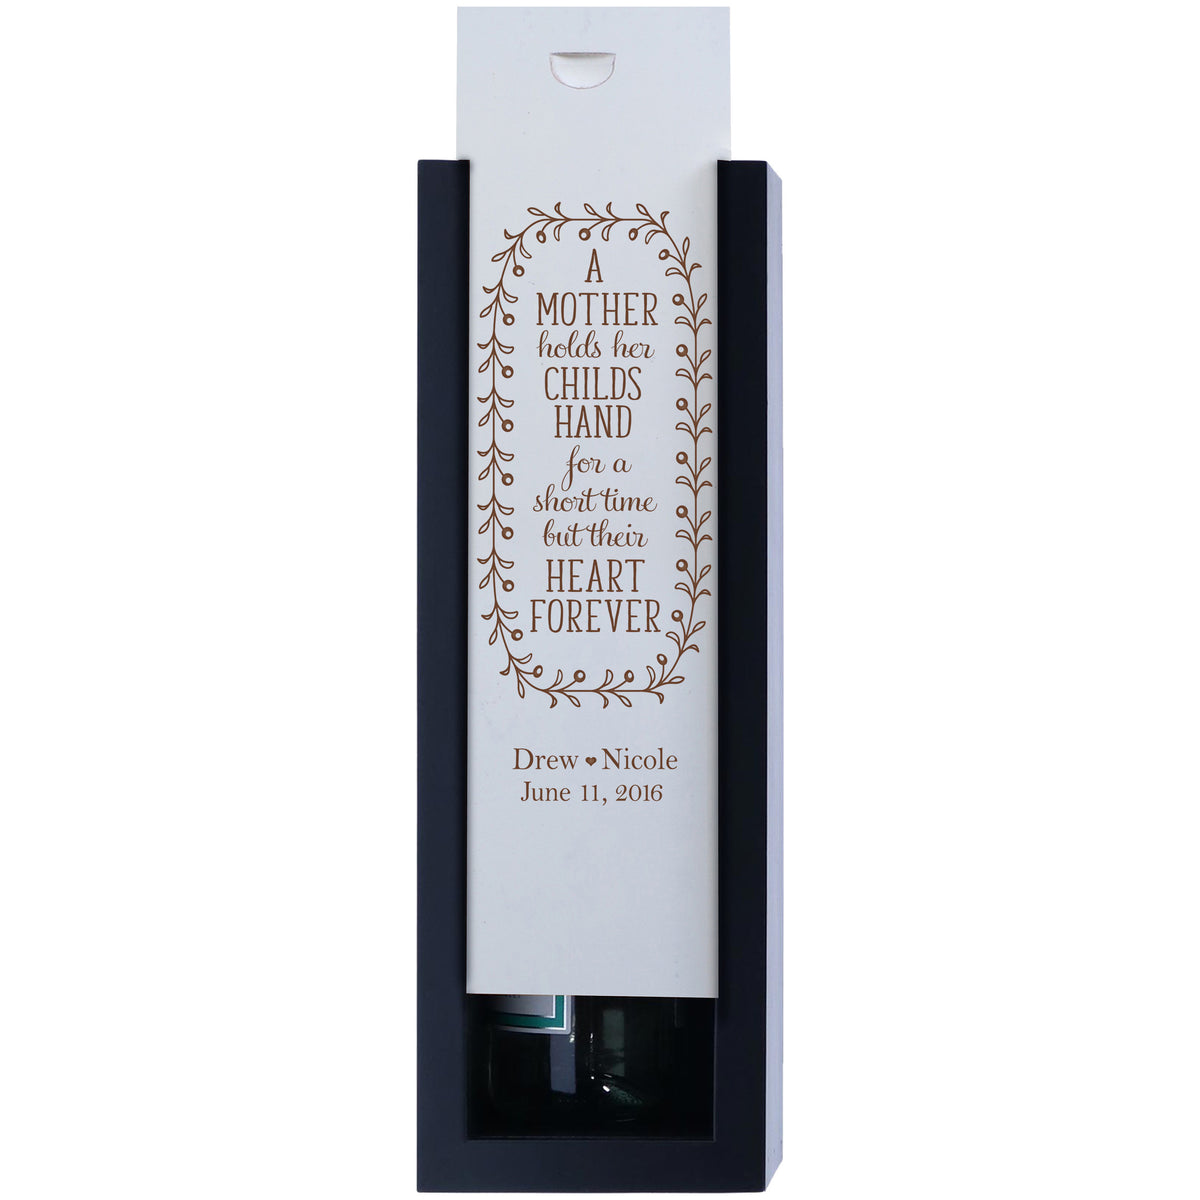 Personalized Mother Wedding Gift Ideas   Custom Engraved Wine Boxes